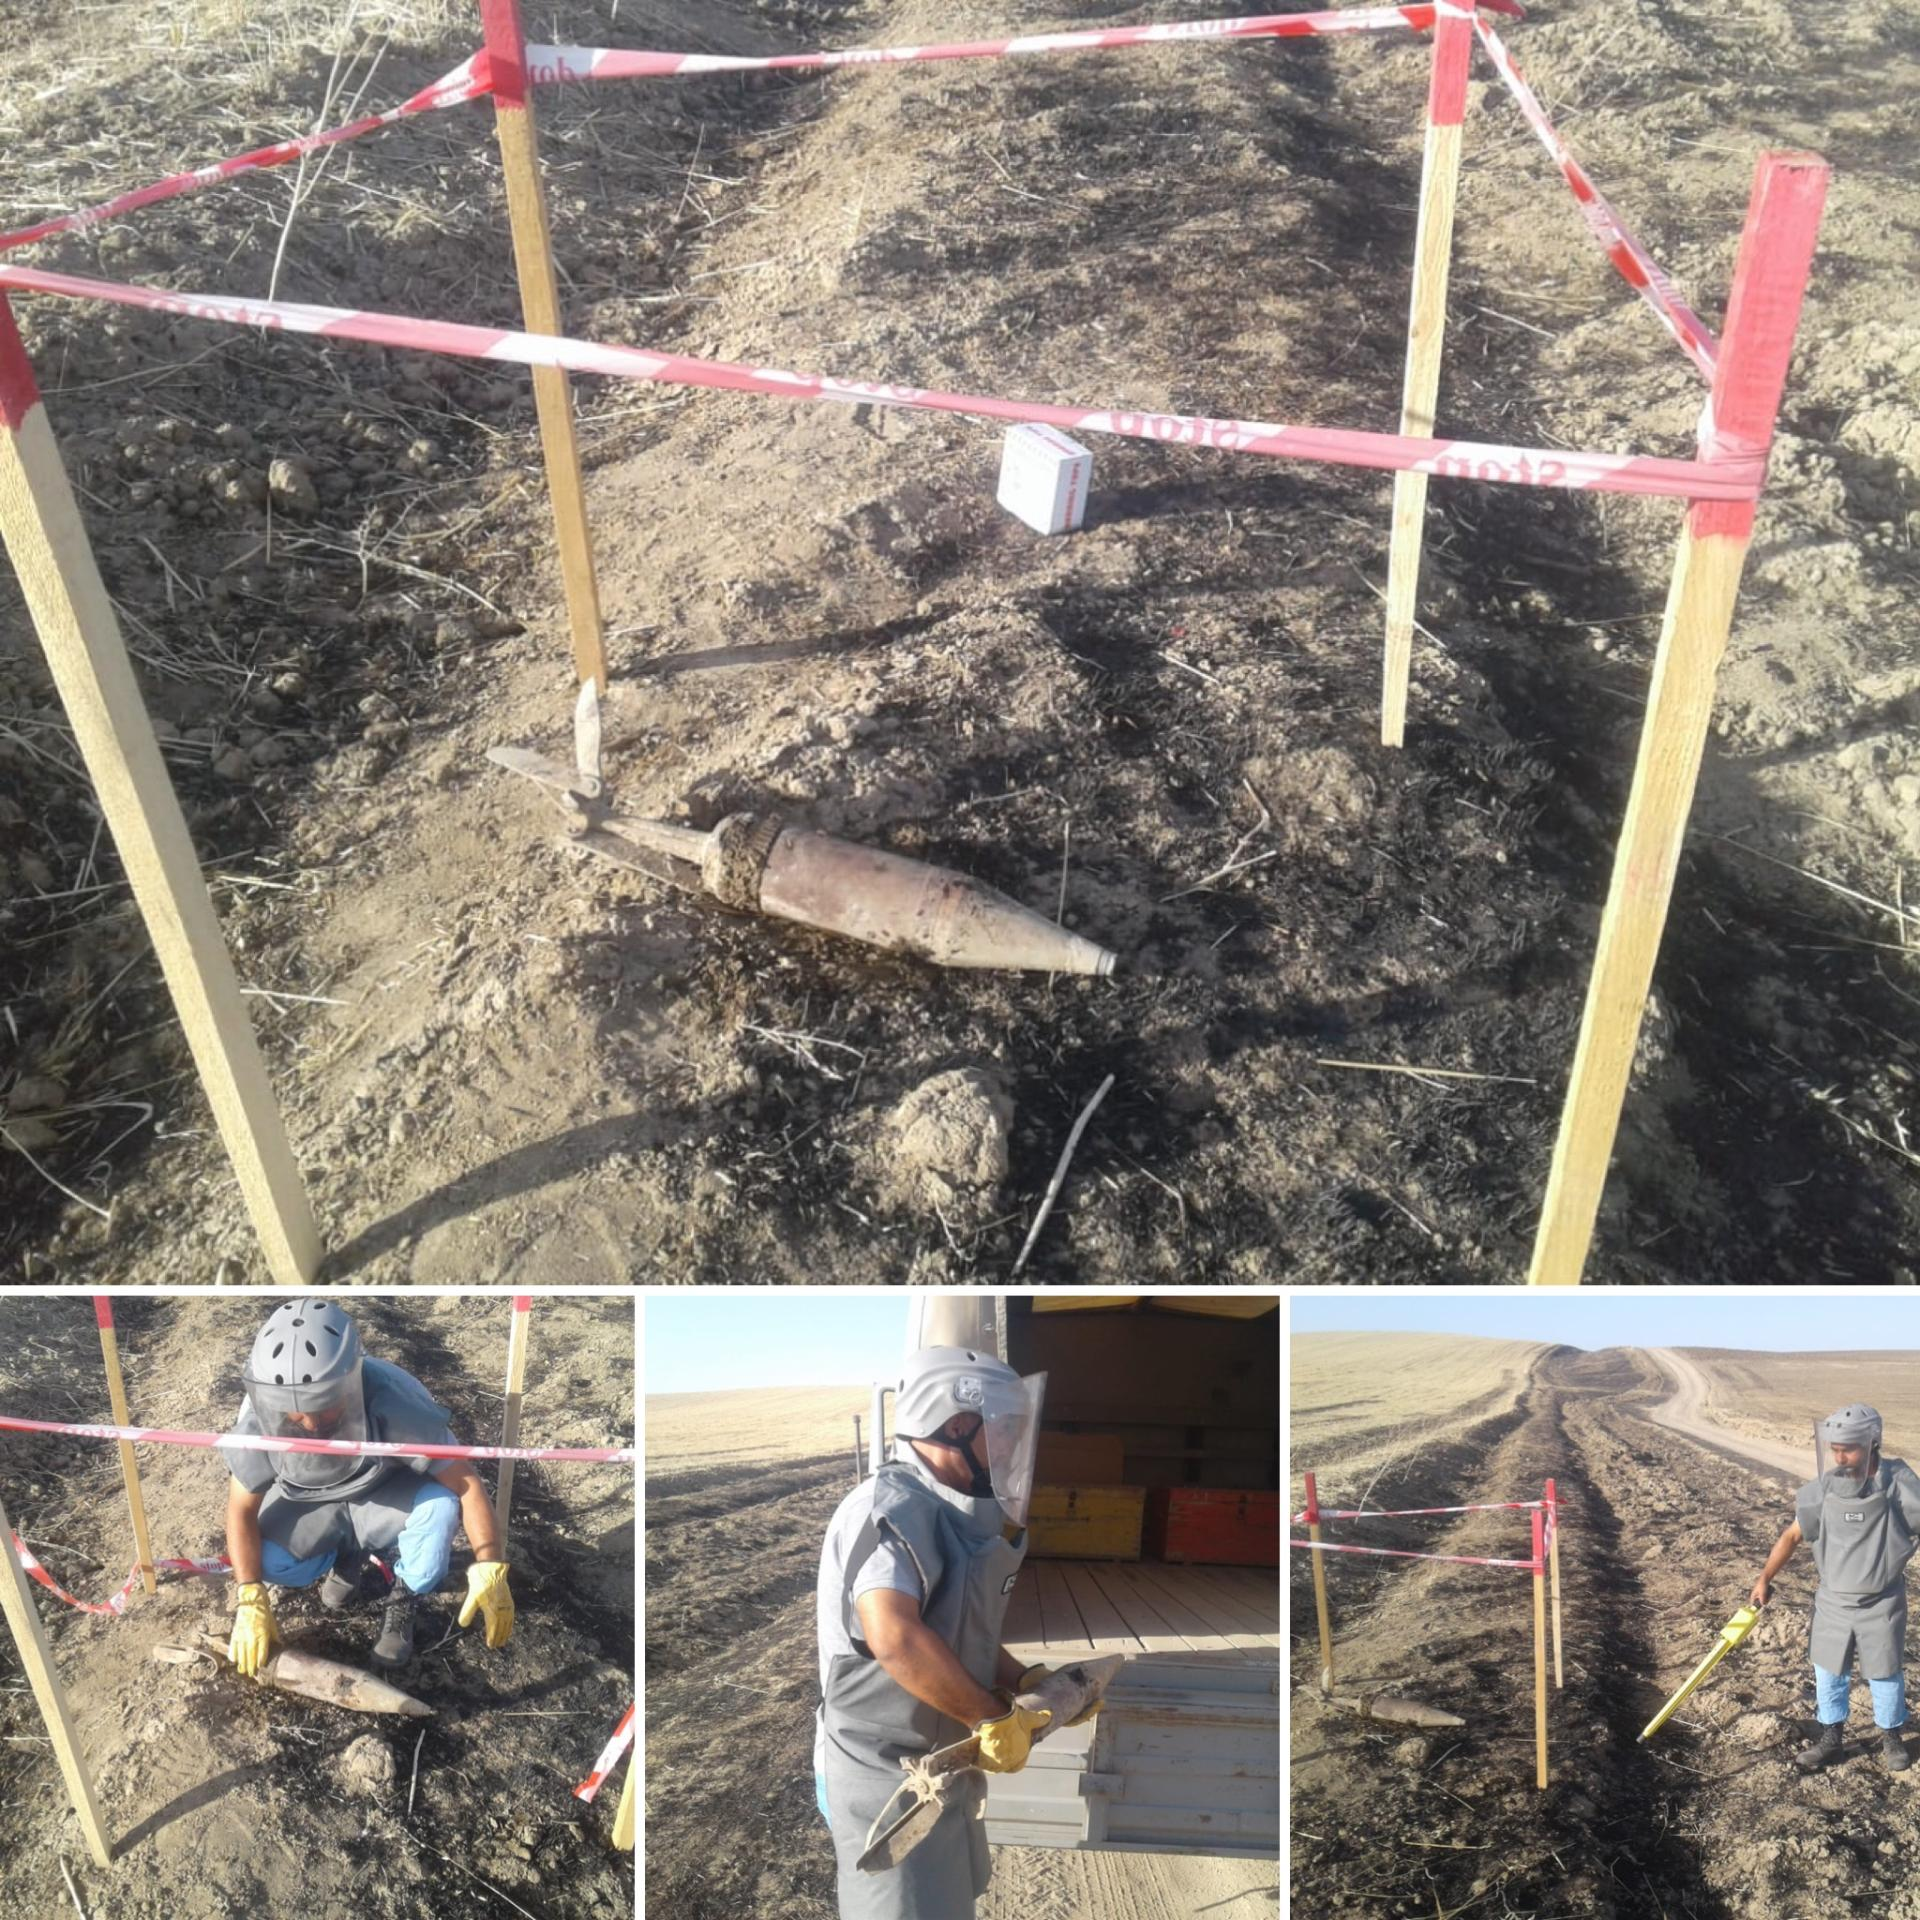 Unexploded cannon shell discovered in Azerbaijan's Fizuli district (PHOTO)